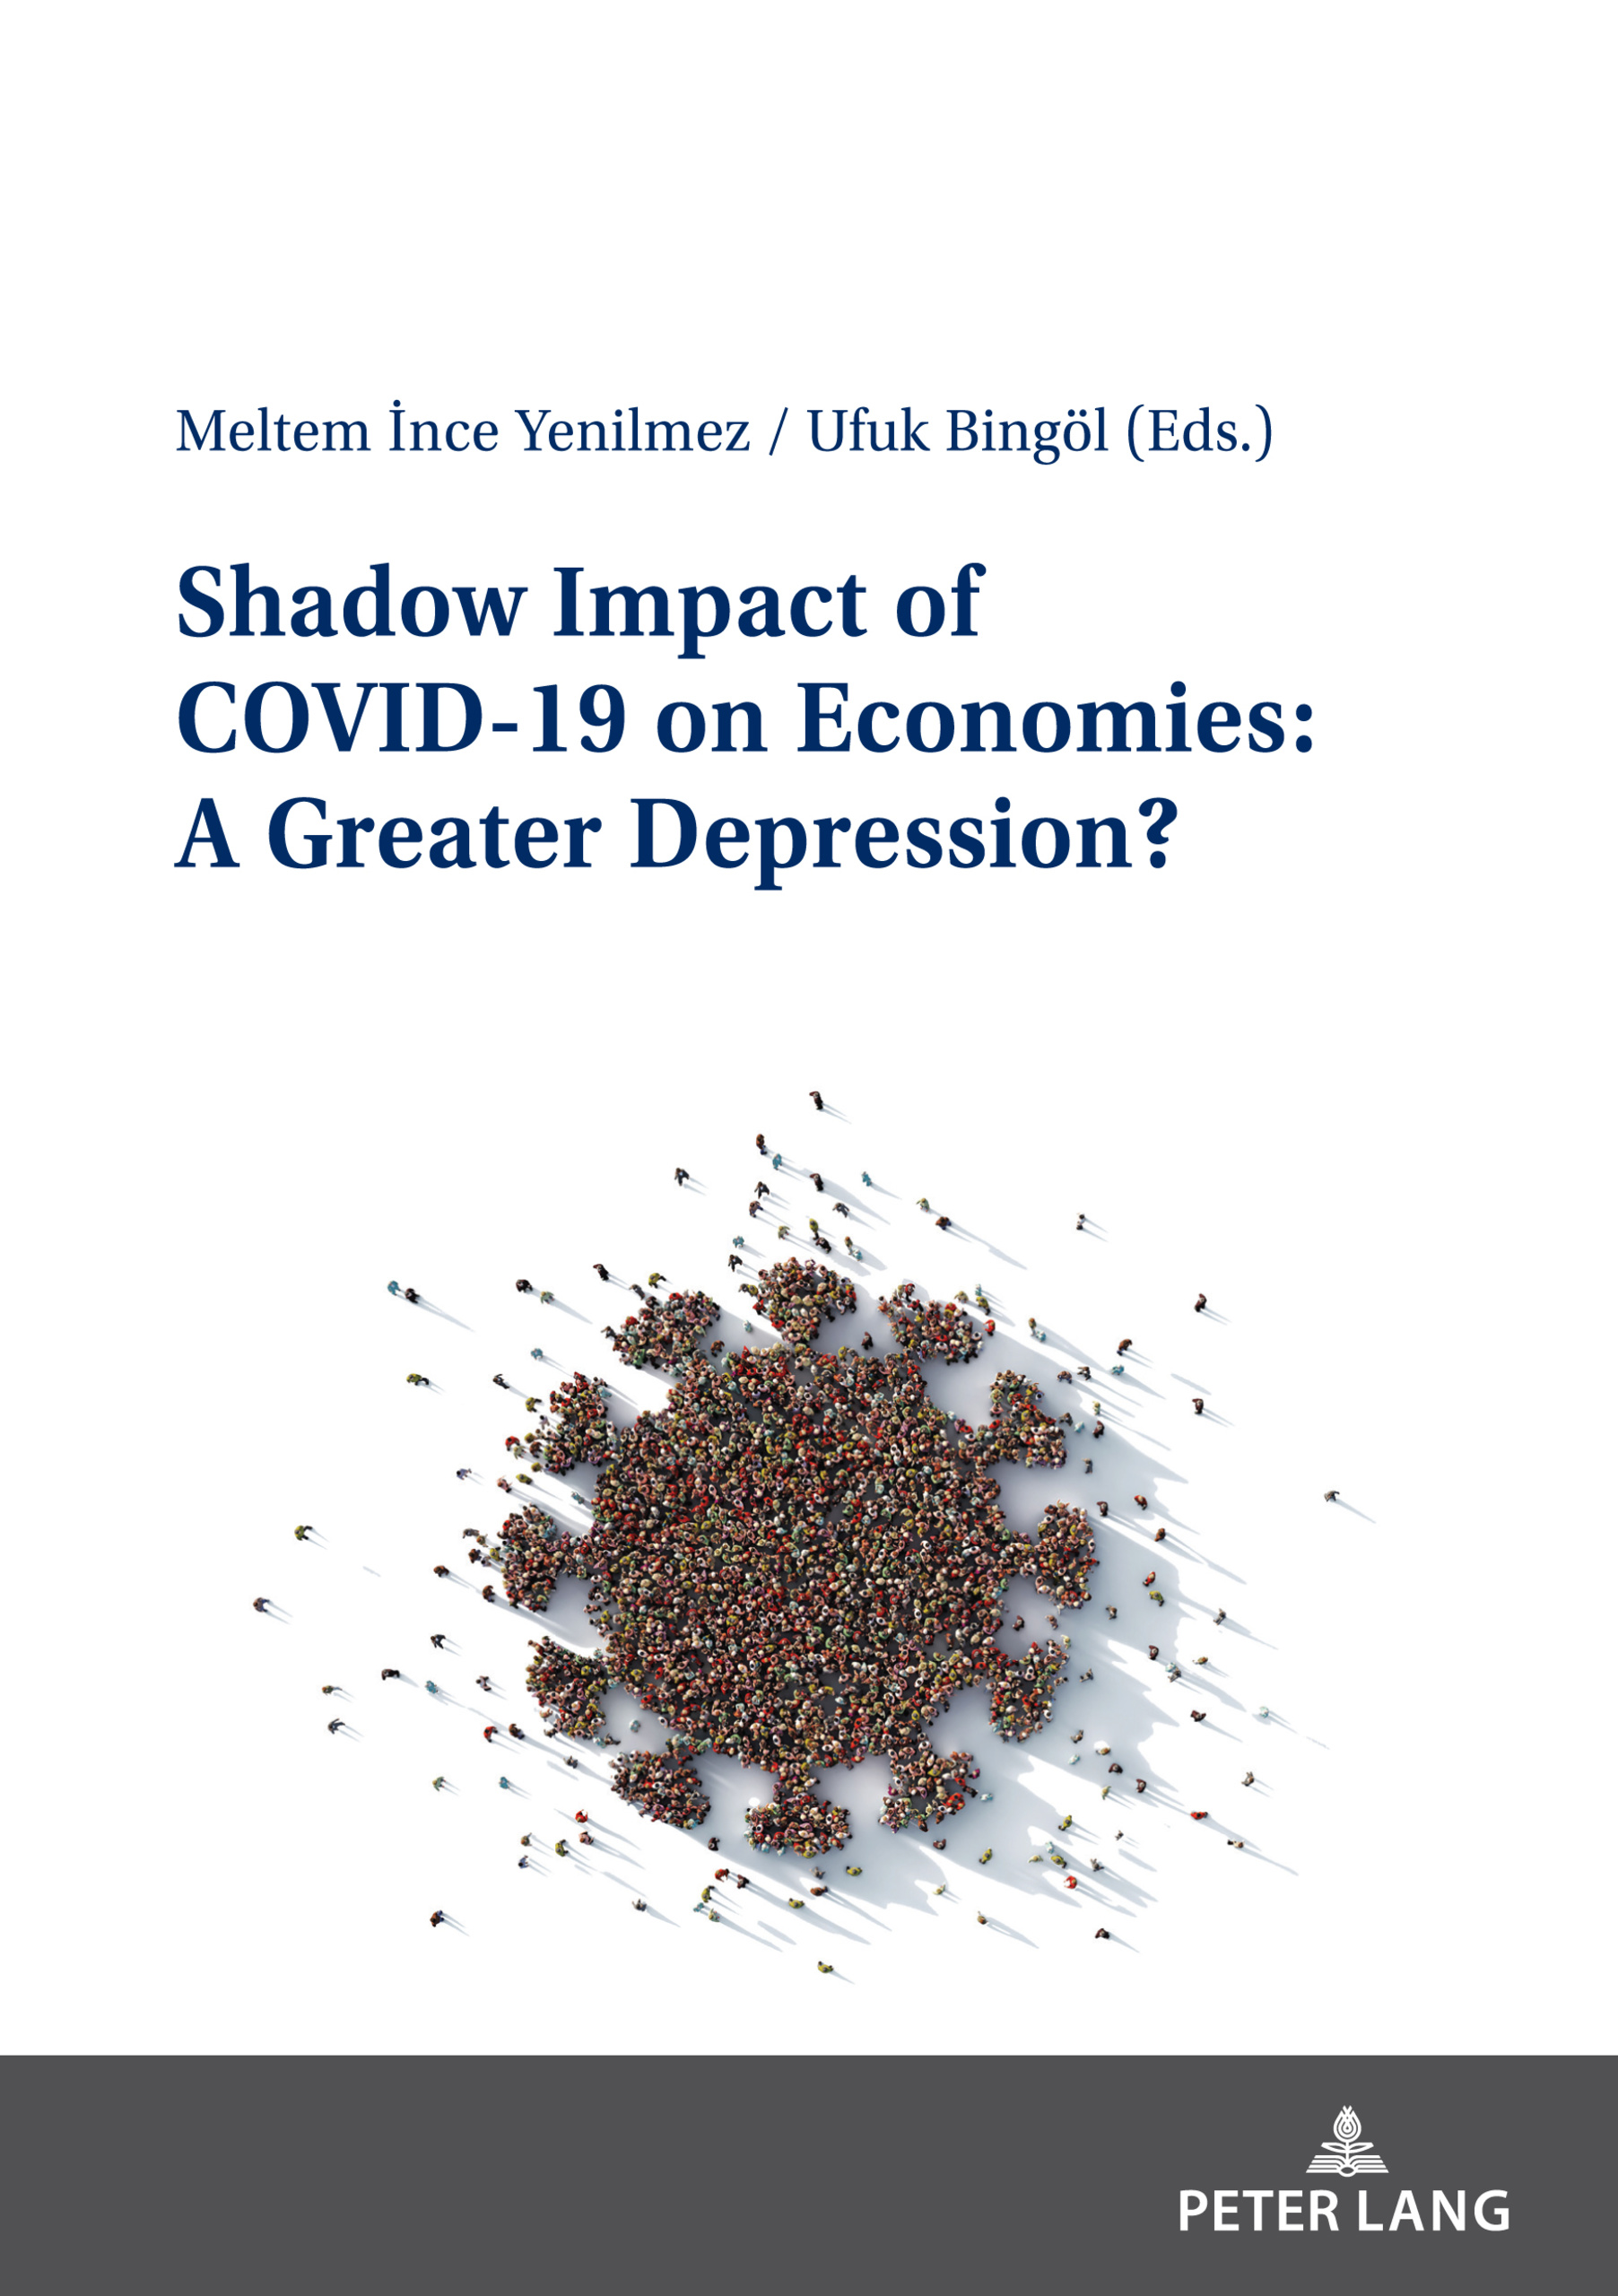 Title: Shadow Impact of COVID-19 on Economies: A Greater Depression?